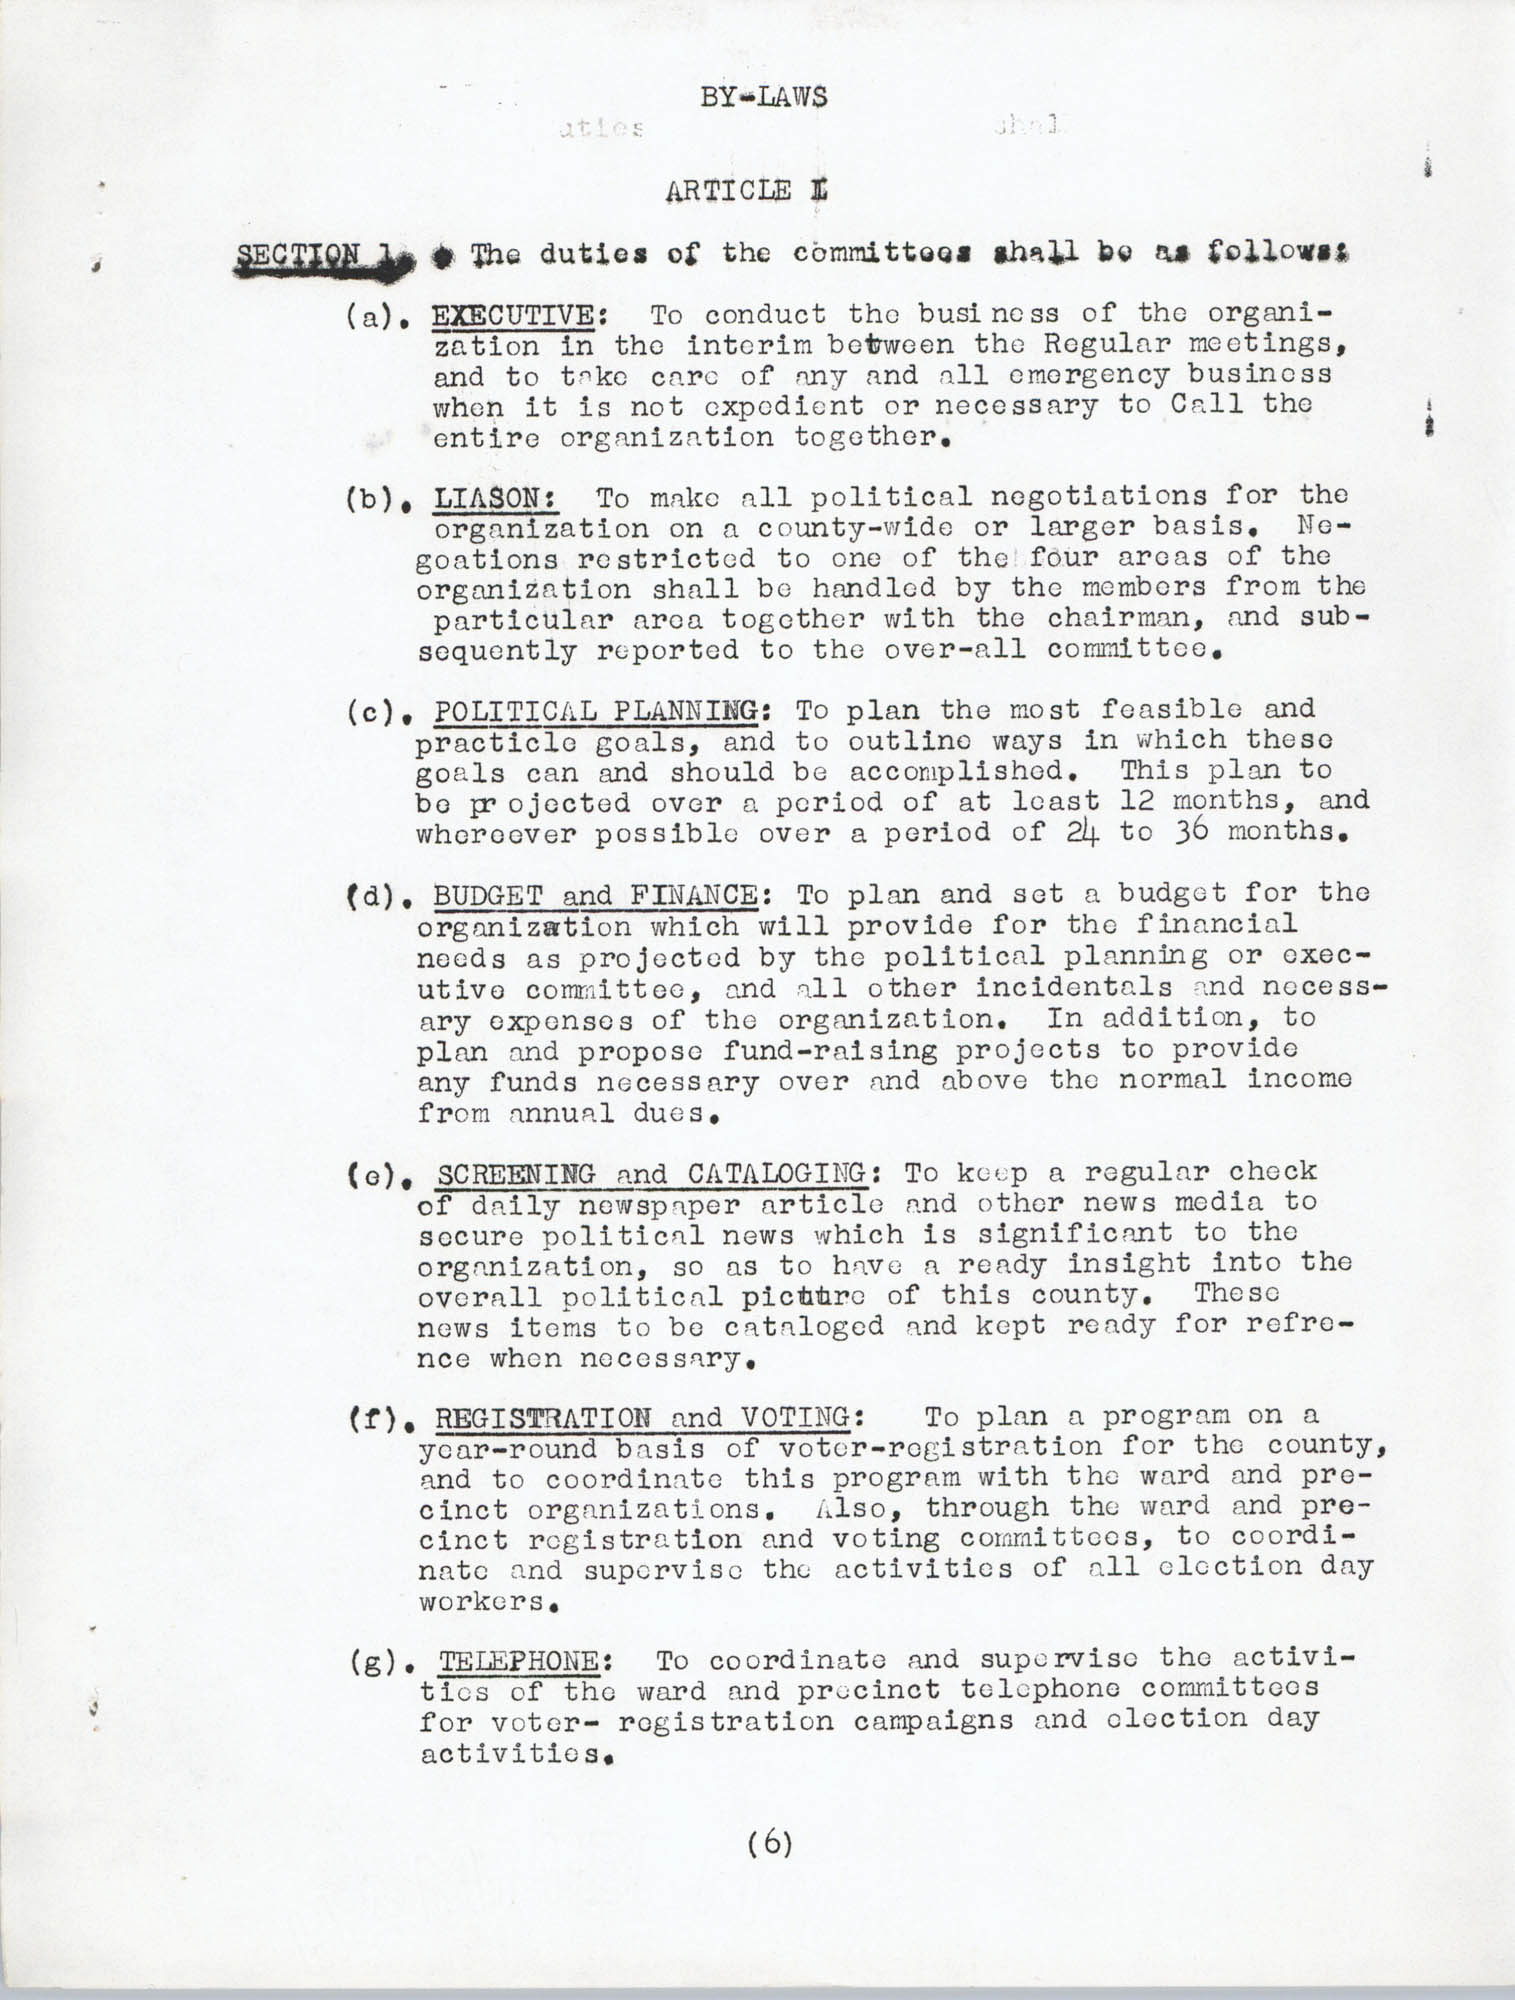 Constitution and By-Laws, Page 6